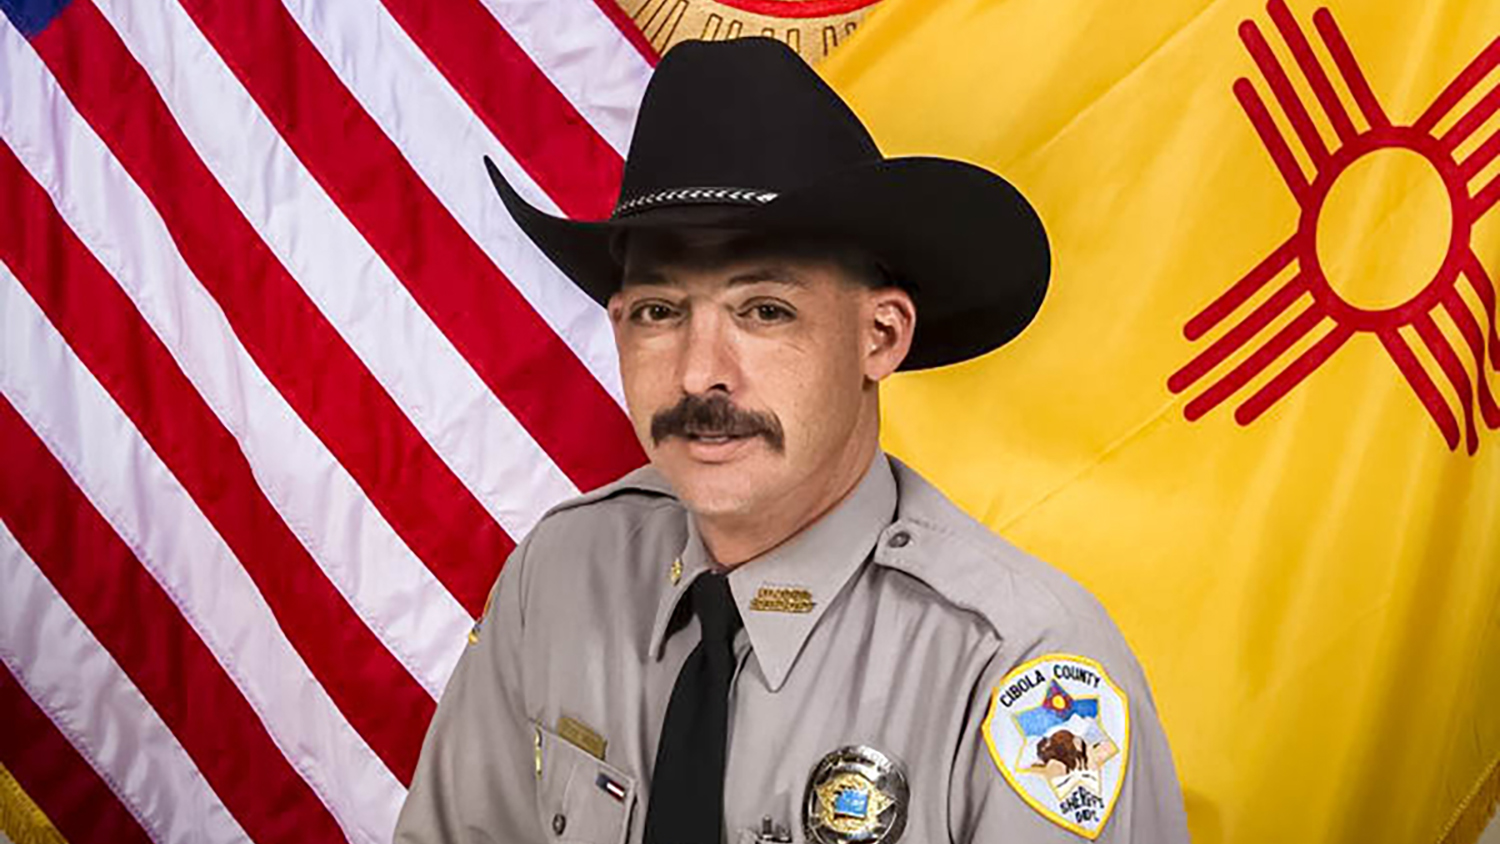 Sheriff Serves His Community with Friends of NRA